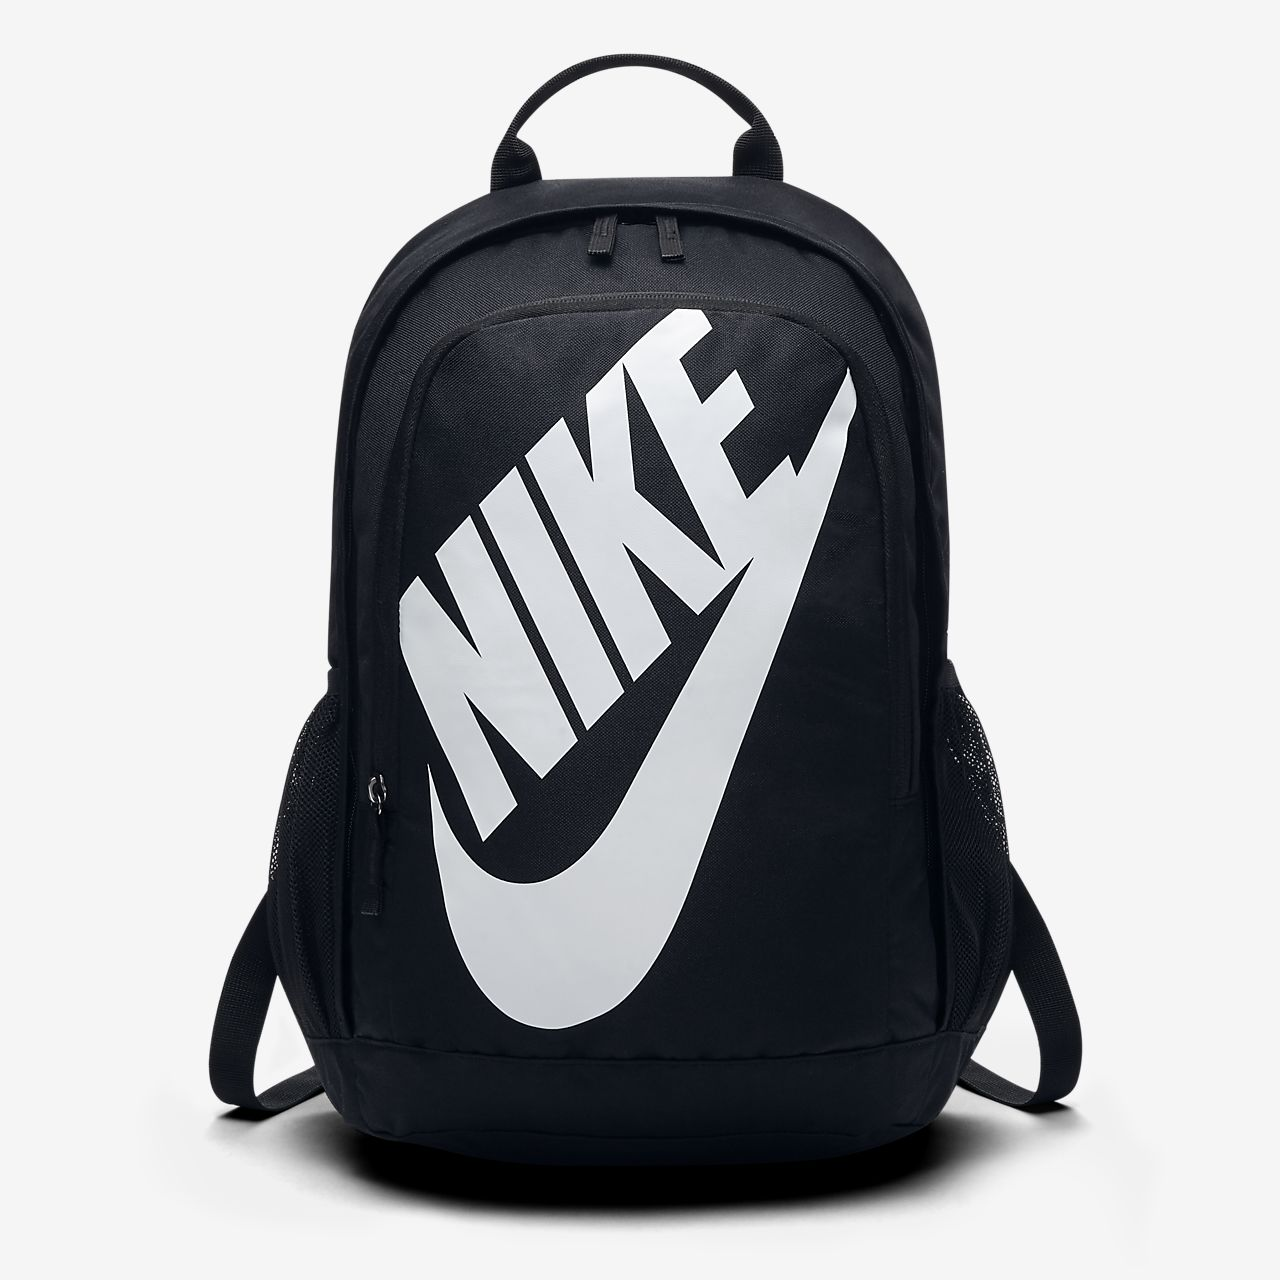 Nike Store - Nike Hayward Futura M 2.0 - Backpack - Photo Blue/White (S64w6838)